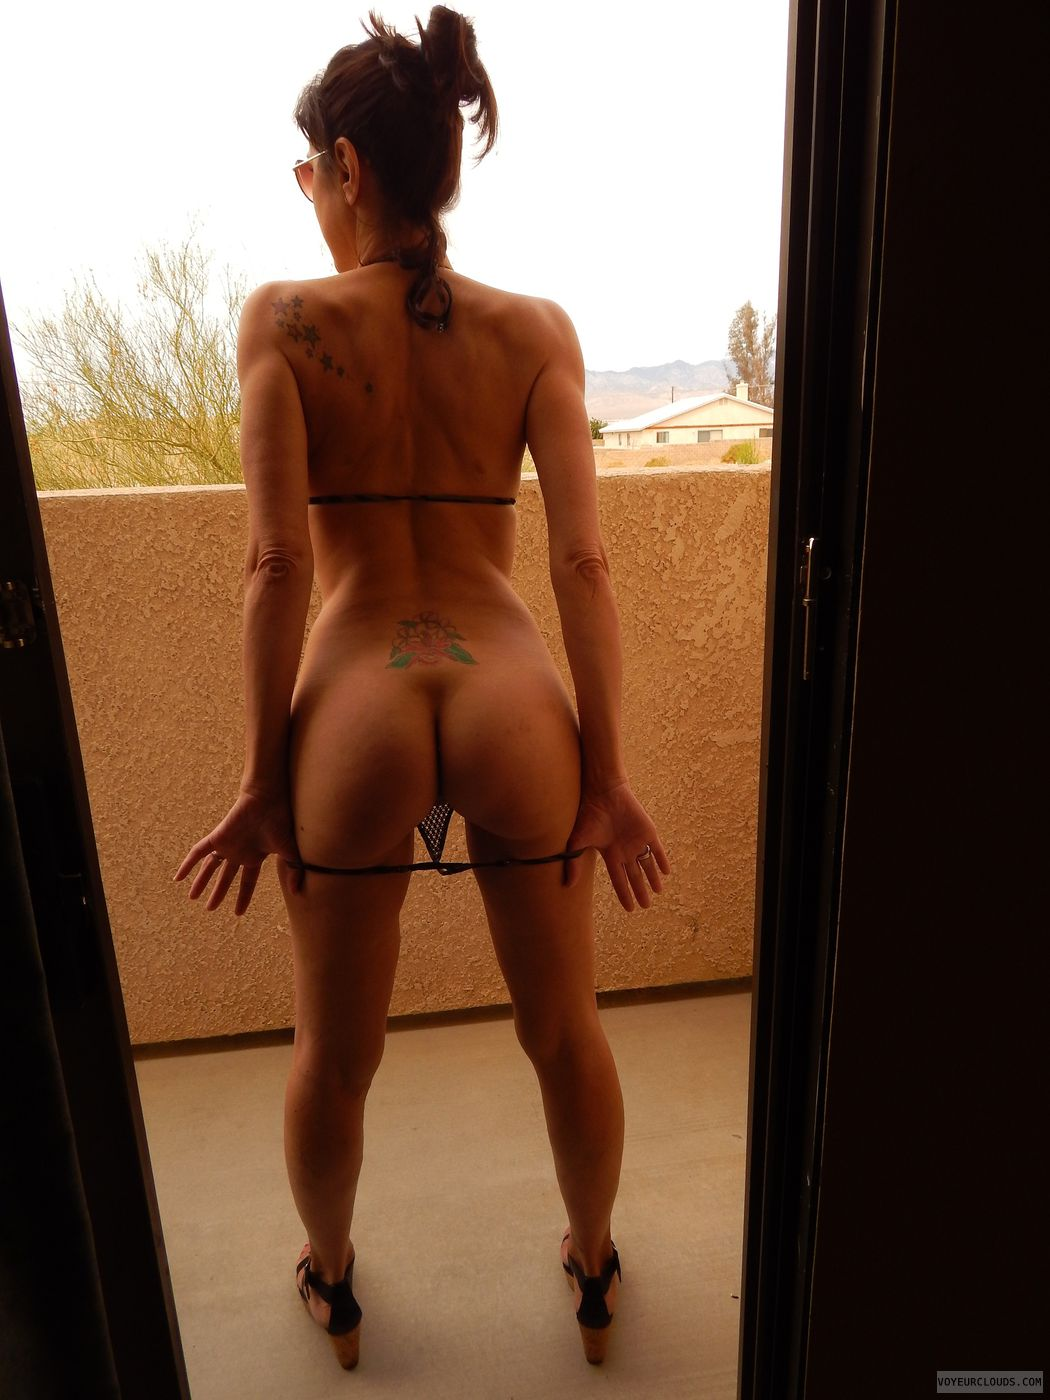 Hotel Balcony Fun Nude In Public